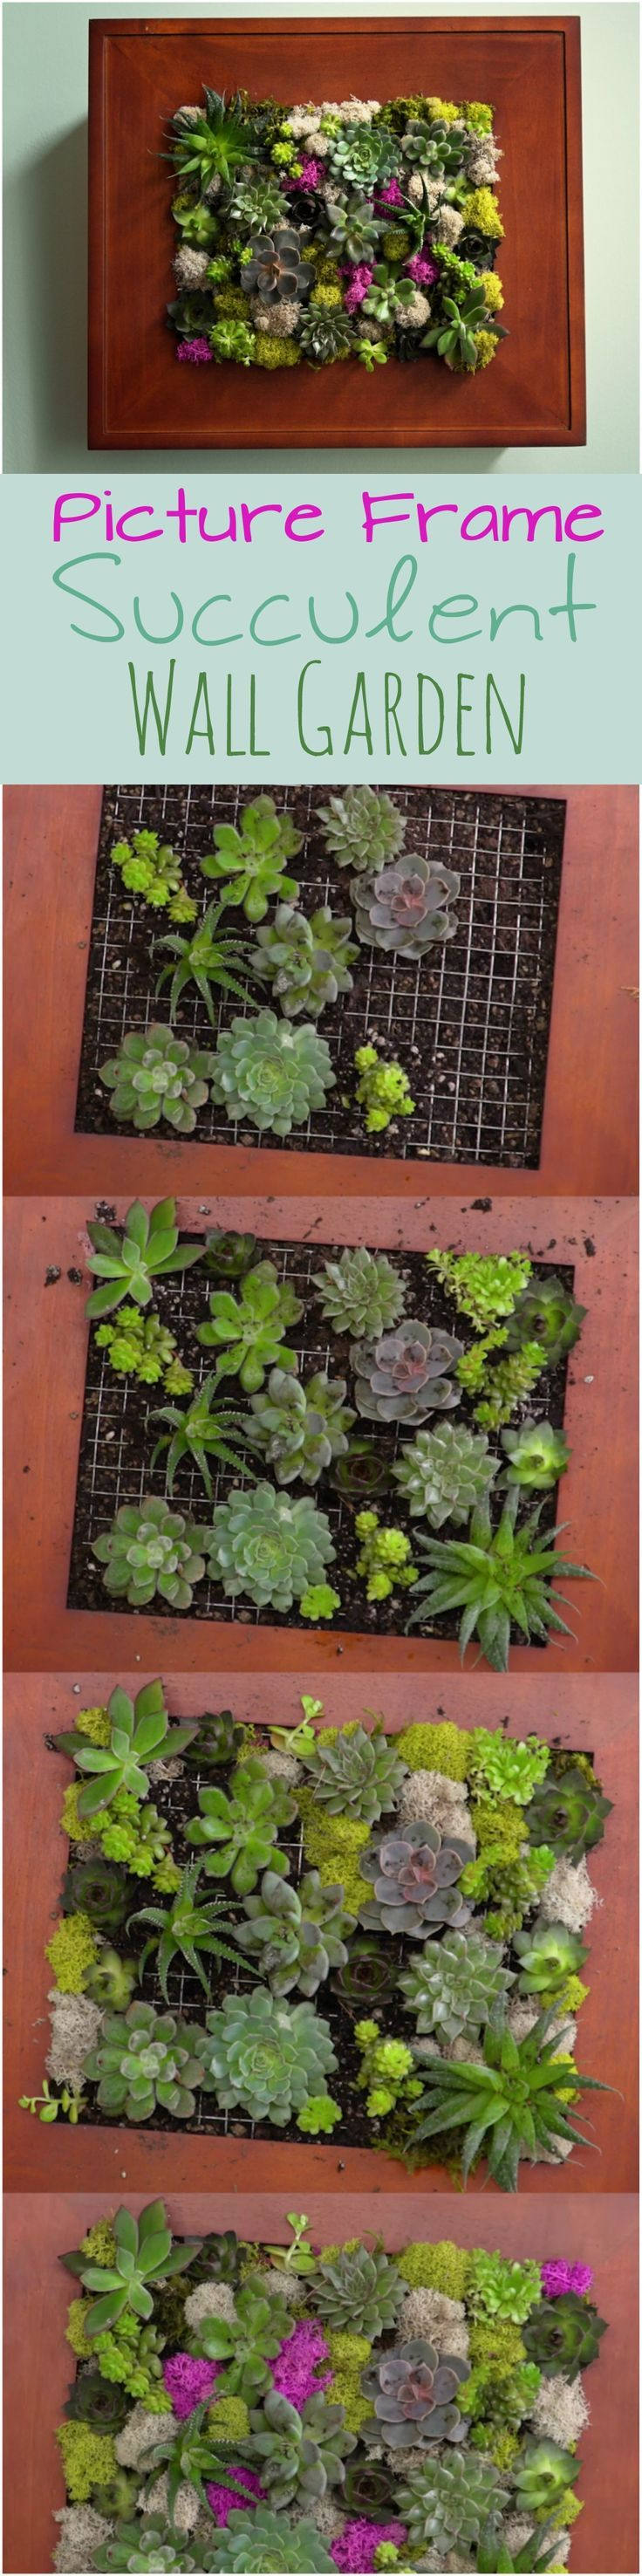 437 best images about succulents diy on pinterest for Indoor succulent wall